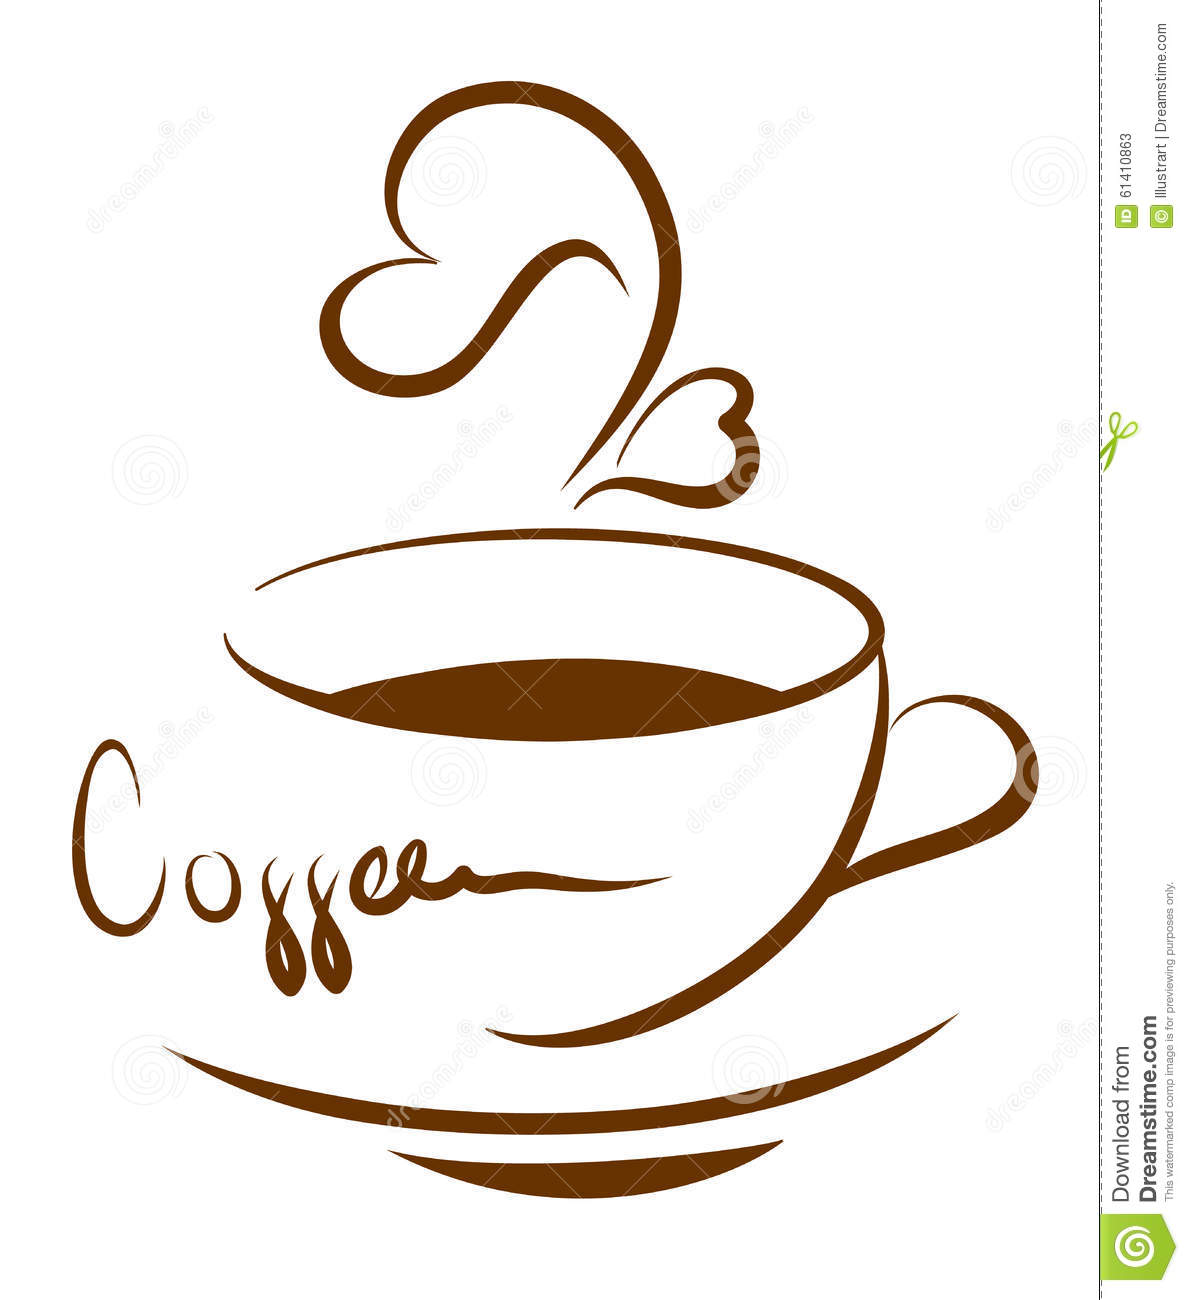 Coffee Illustration Stock Vector - Image: 61410863